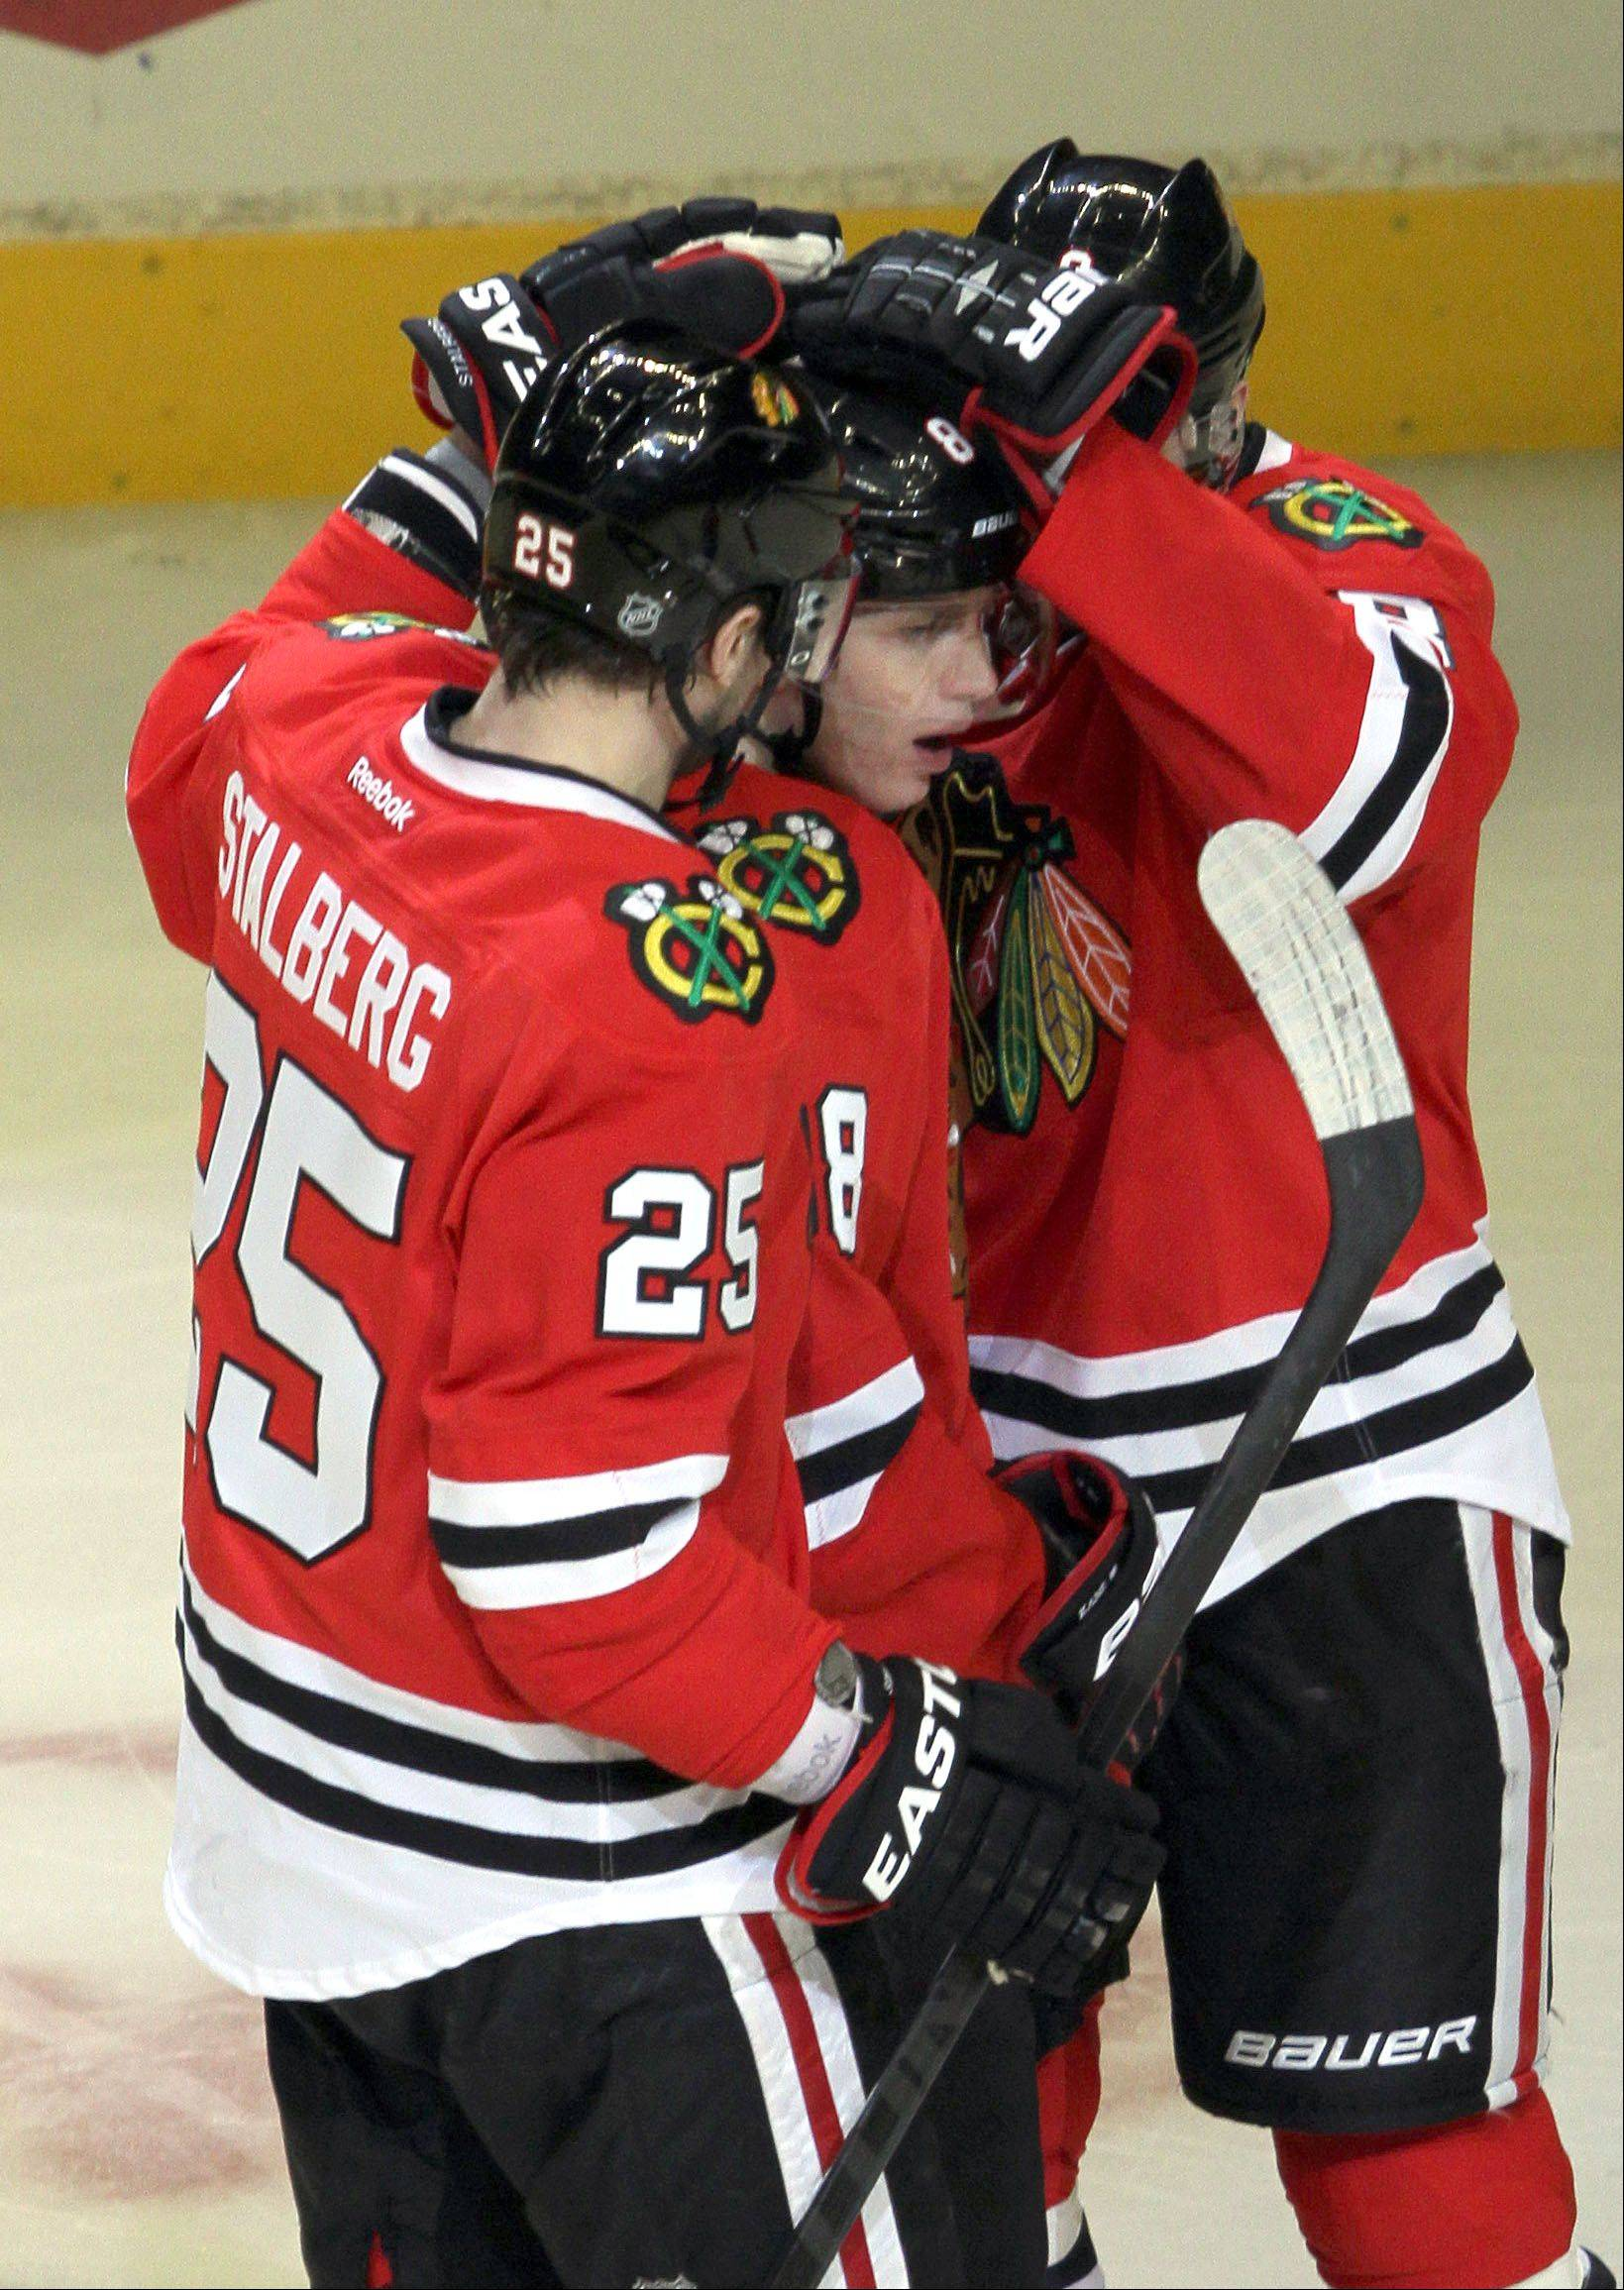 Chicago Blackhawks Viktor Stalberg and Nick Leddy celebrate with Patrick Kane after his 2nd period goal during their game Sunday night at the United Center in Chicago.